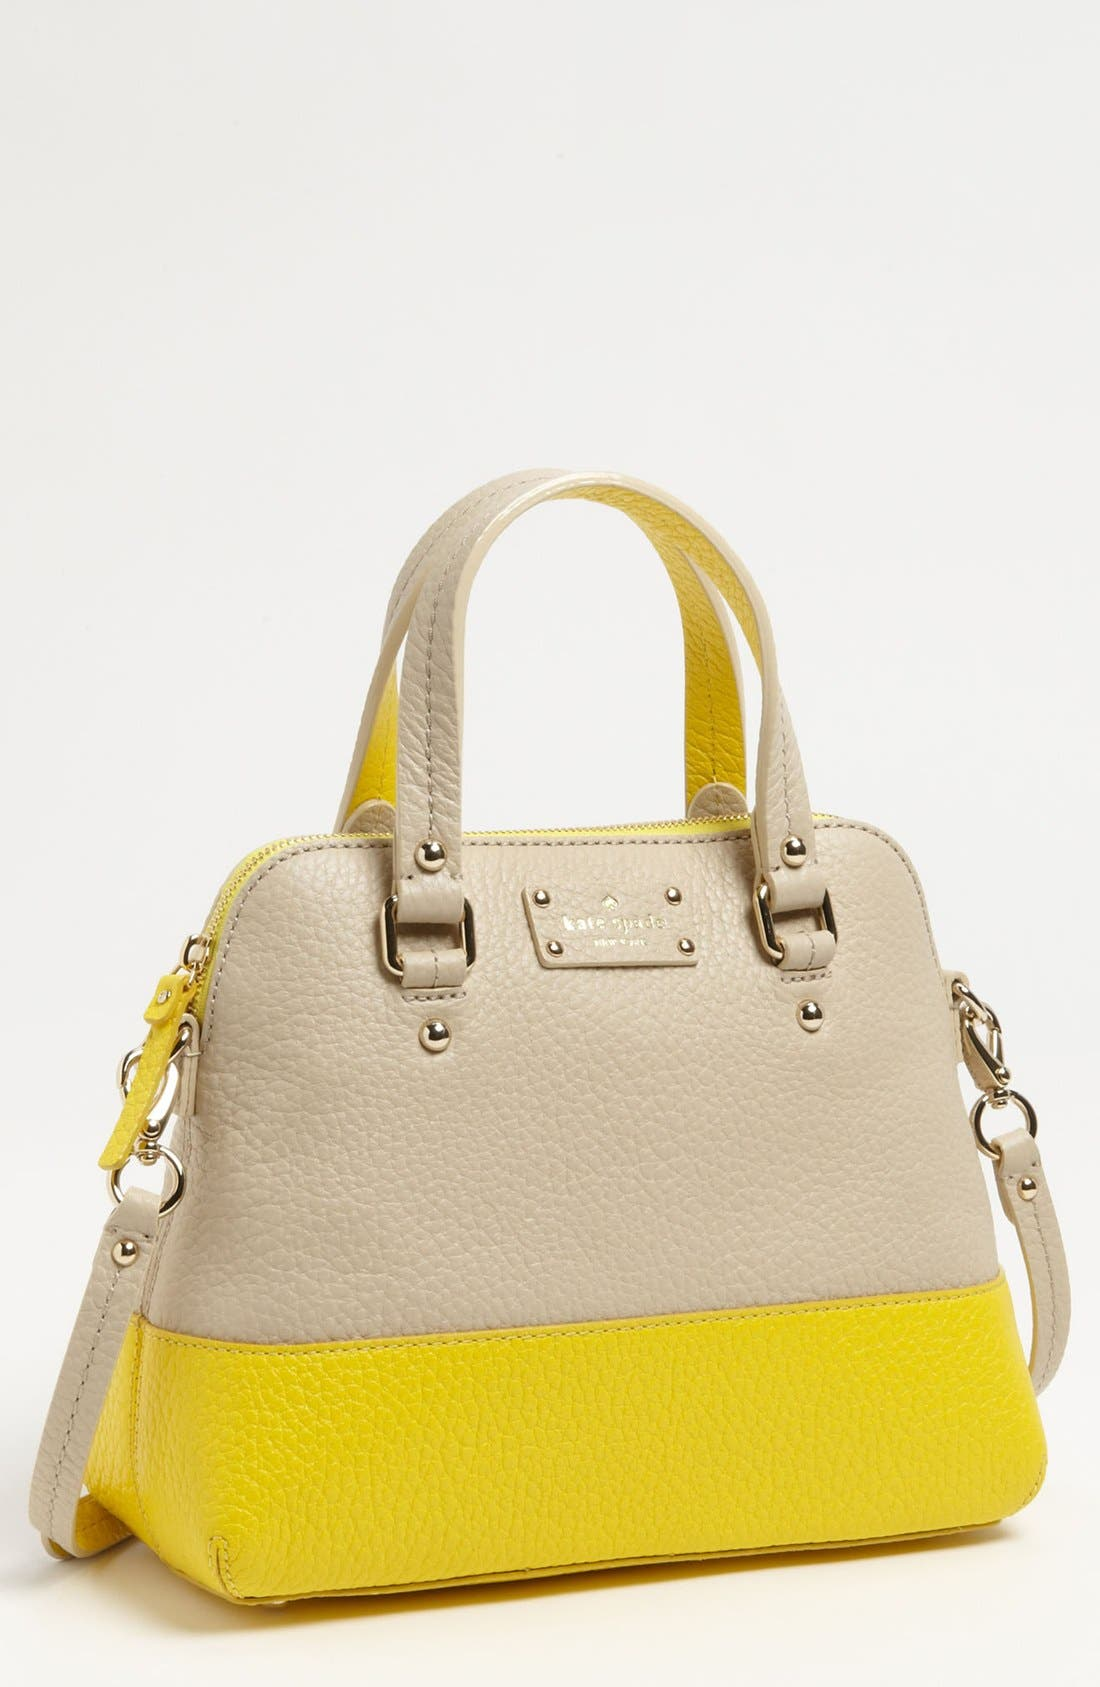 Alternate Image 1 Selected - kate spade new york 'grove court - maise' satchel